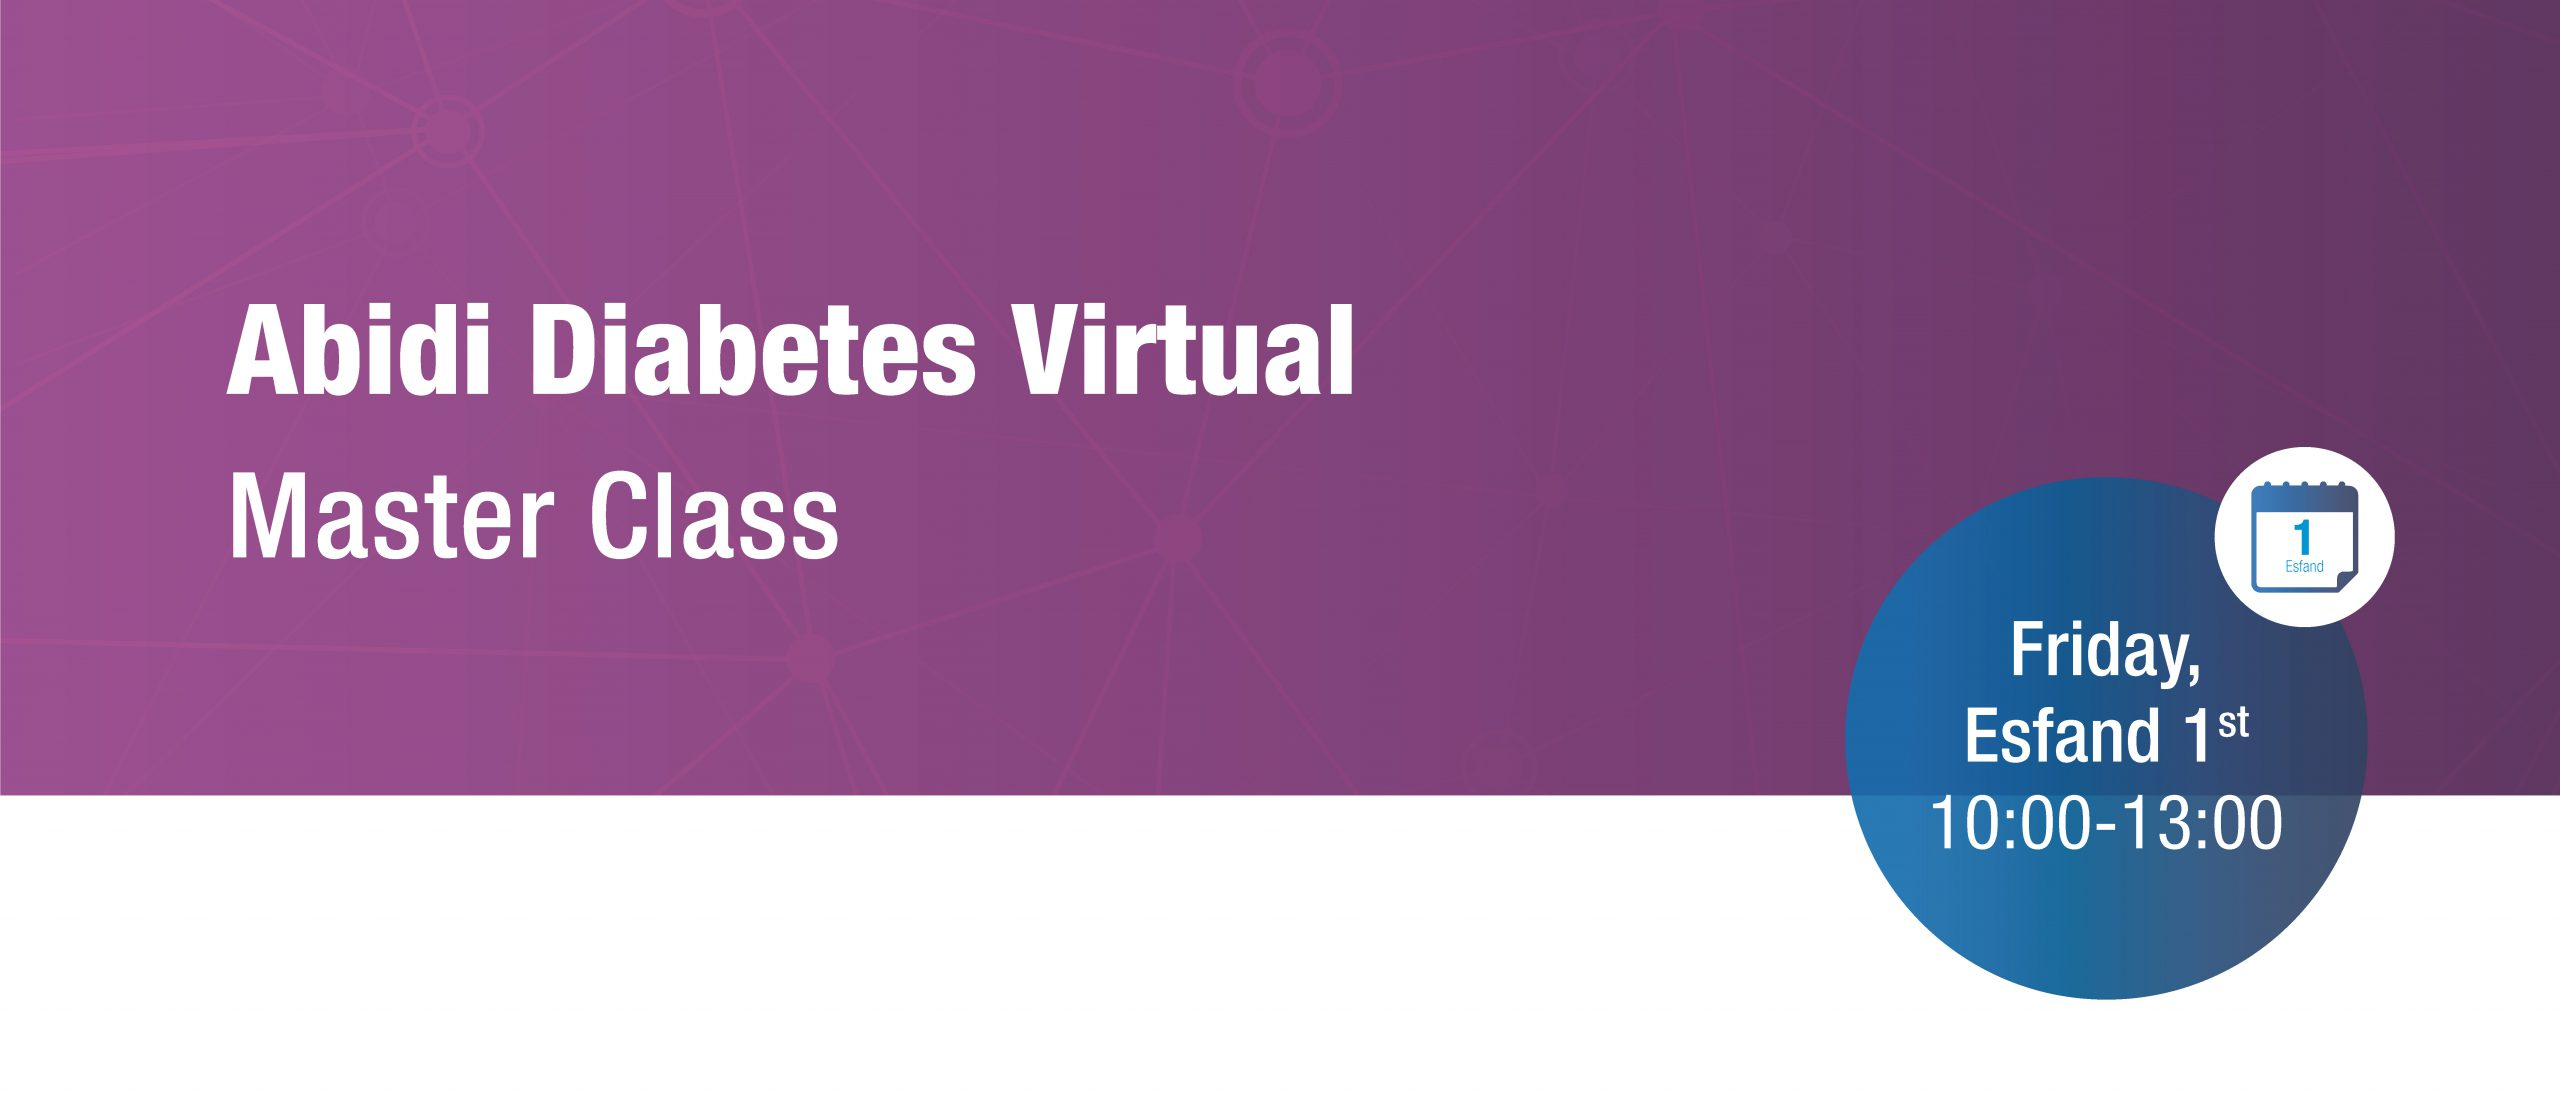 Abidi Diabetes Virtual Master Class